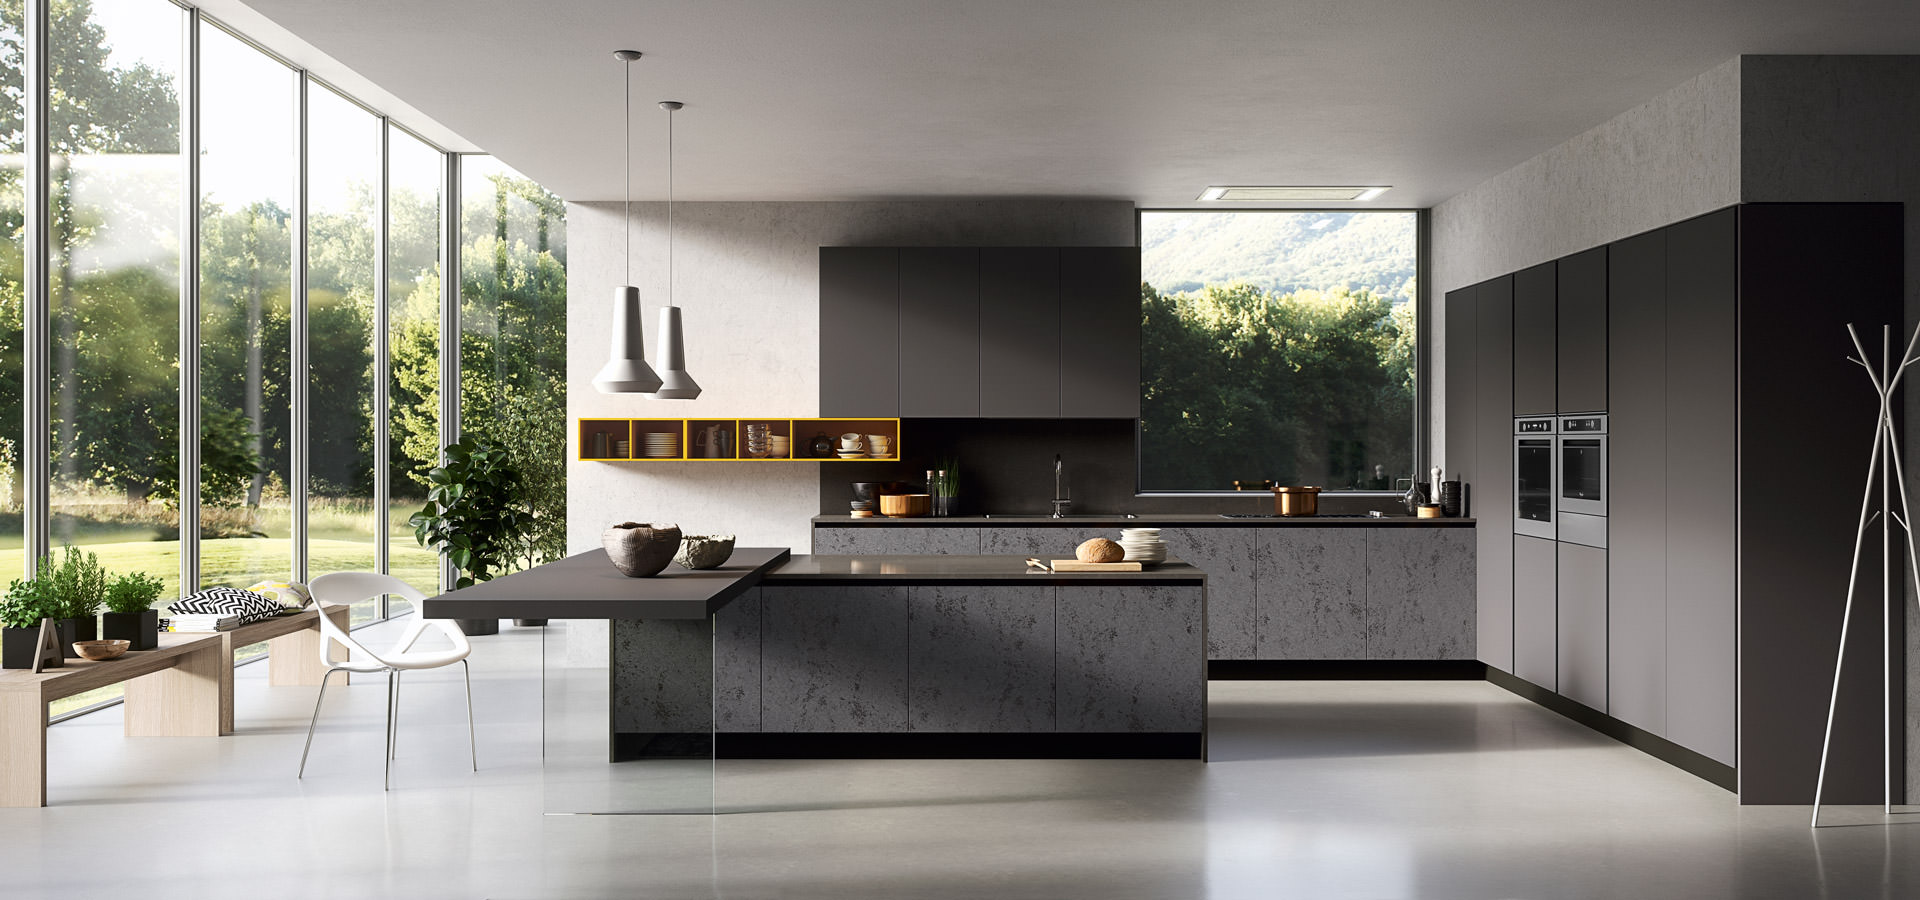 Top Cucine Industriali - MU56